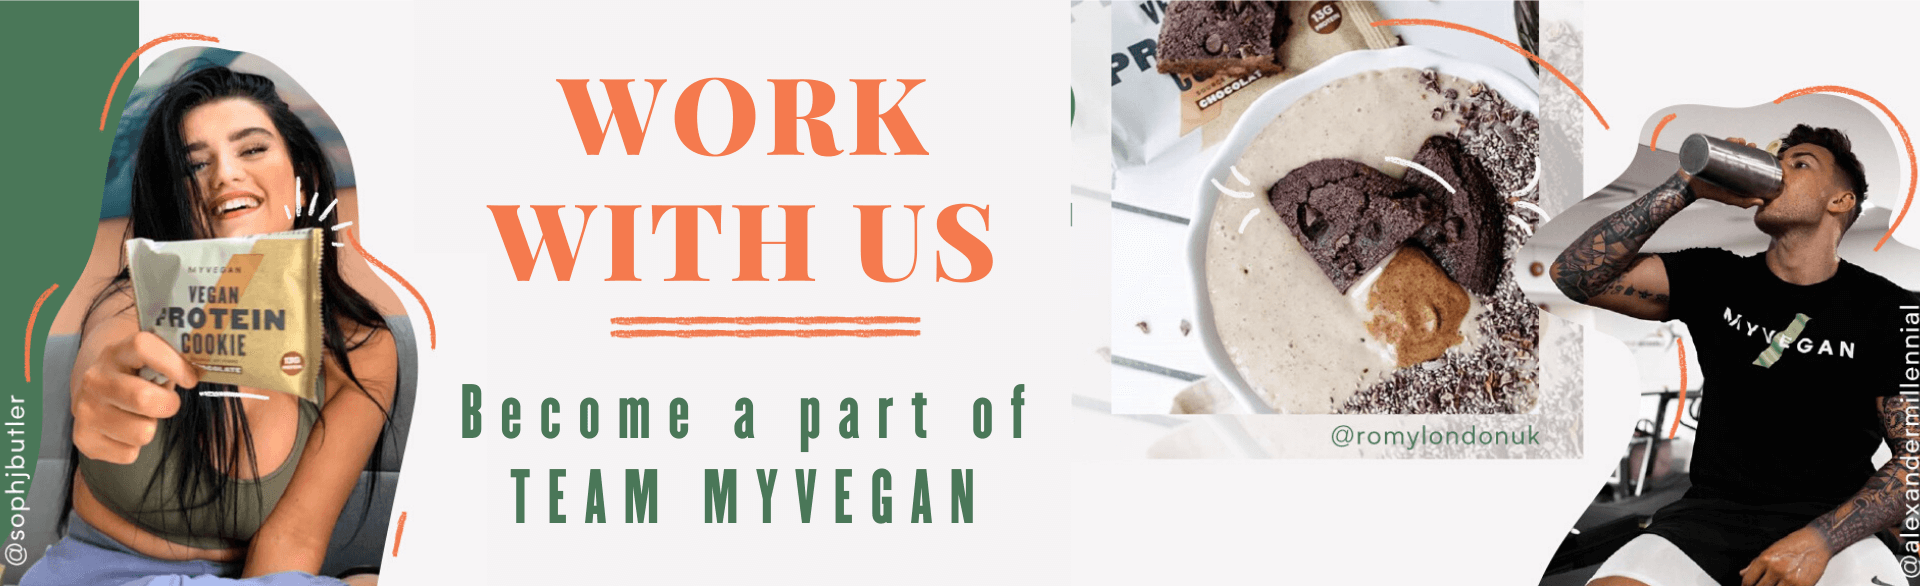 Ways to Work With Myvegan